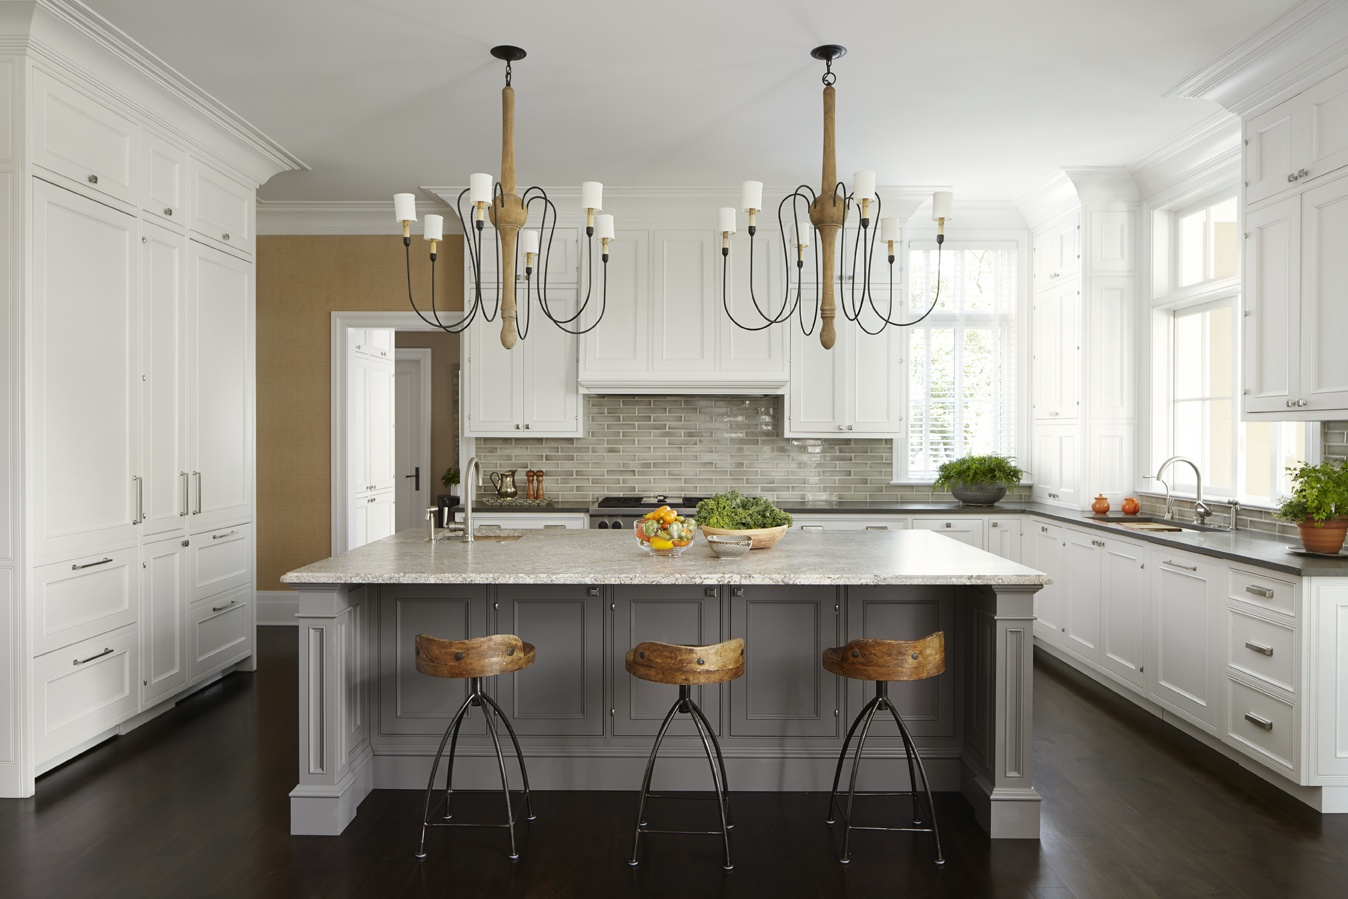 Tom-Stringer-Design-Kitchen-Illinois